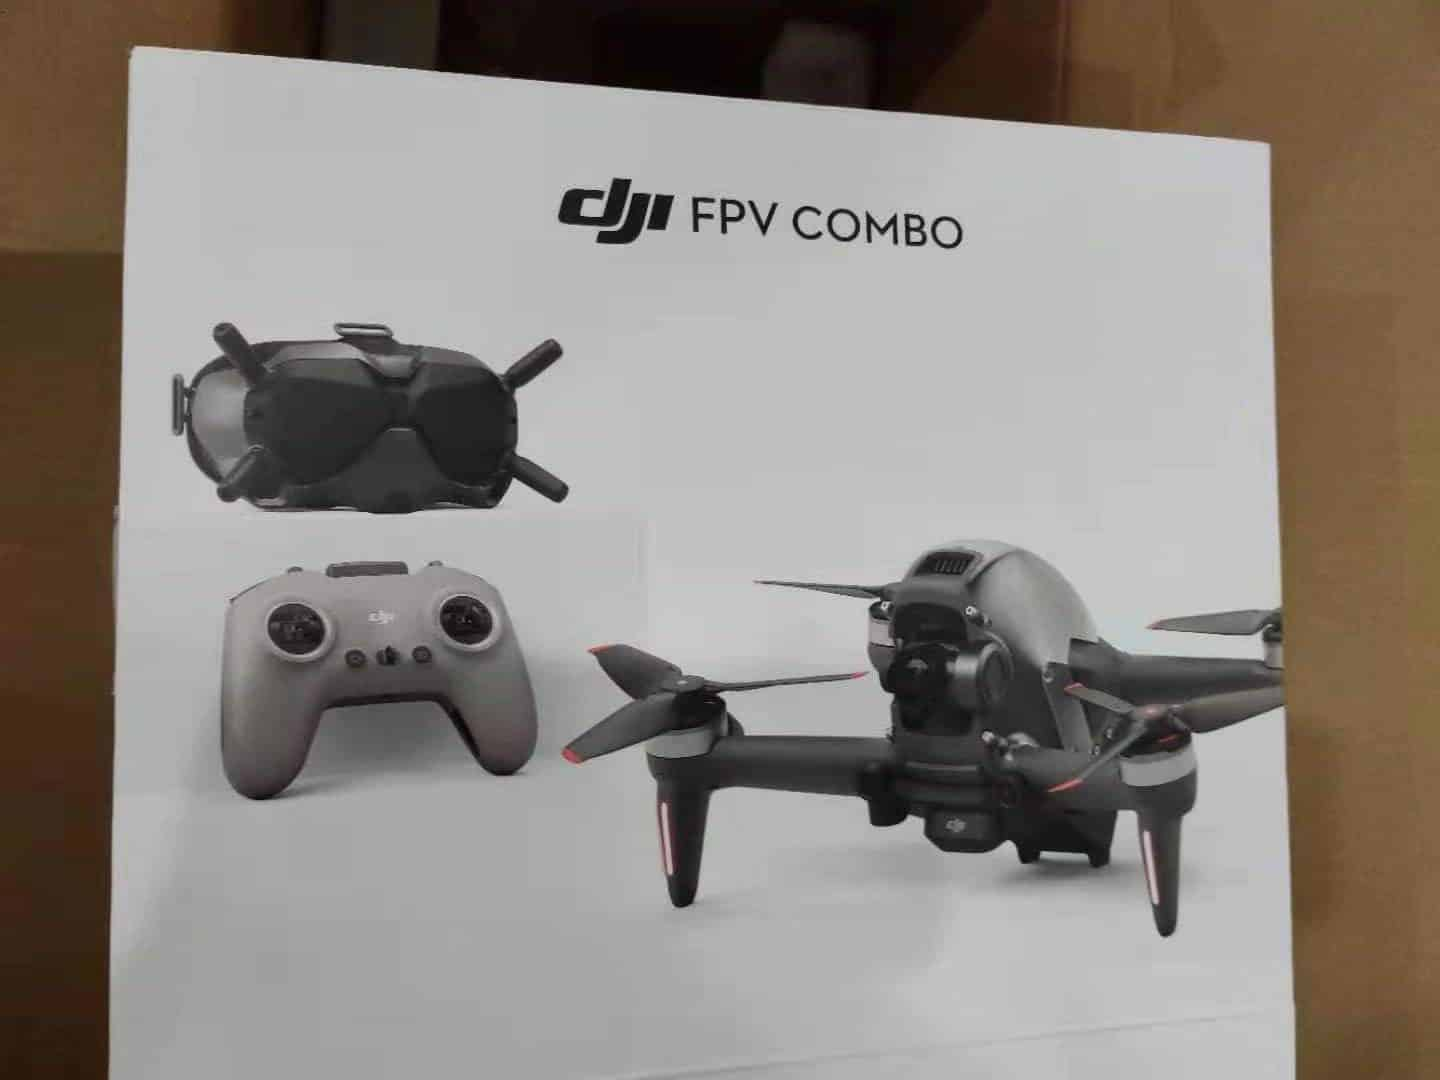 DJI FPV Drone leaked photos